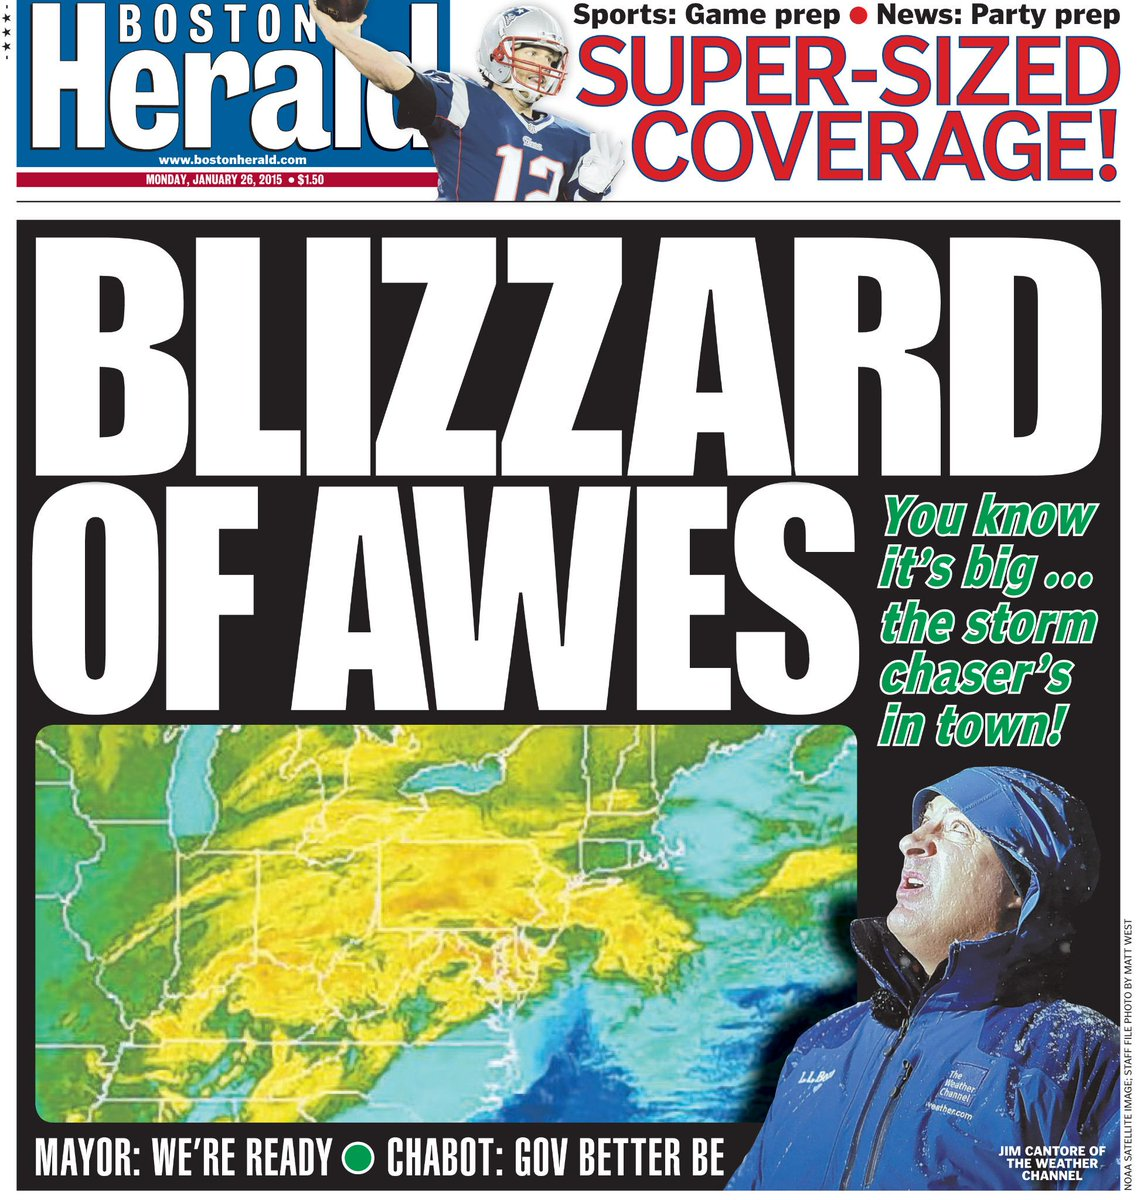 Welcome back to the hub @JimCantore RT @bostonherald: Boston Herald front page -- January 26, 2015 http://t.co/8DbbNMnGov""